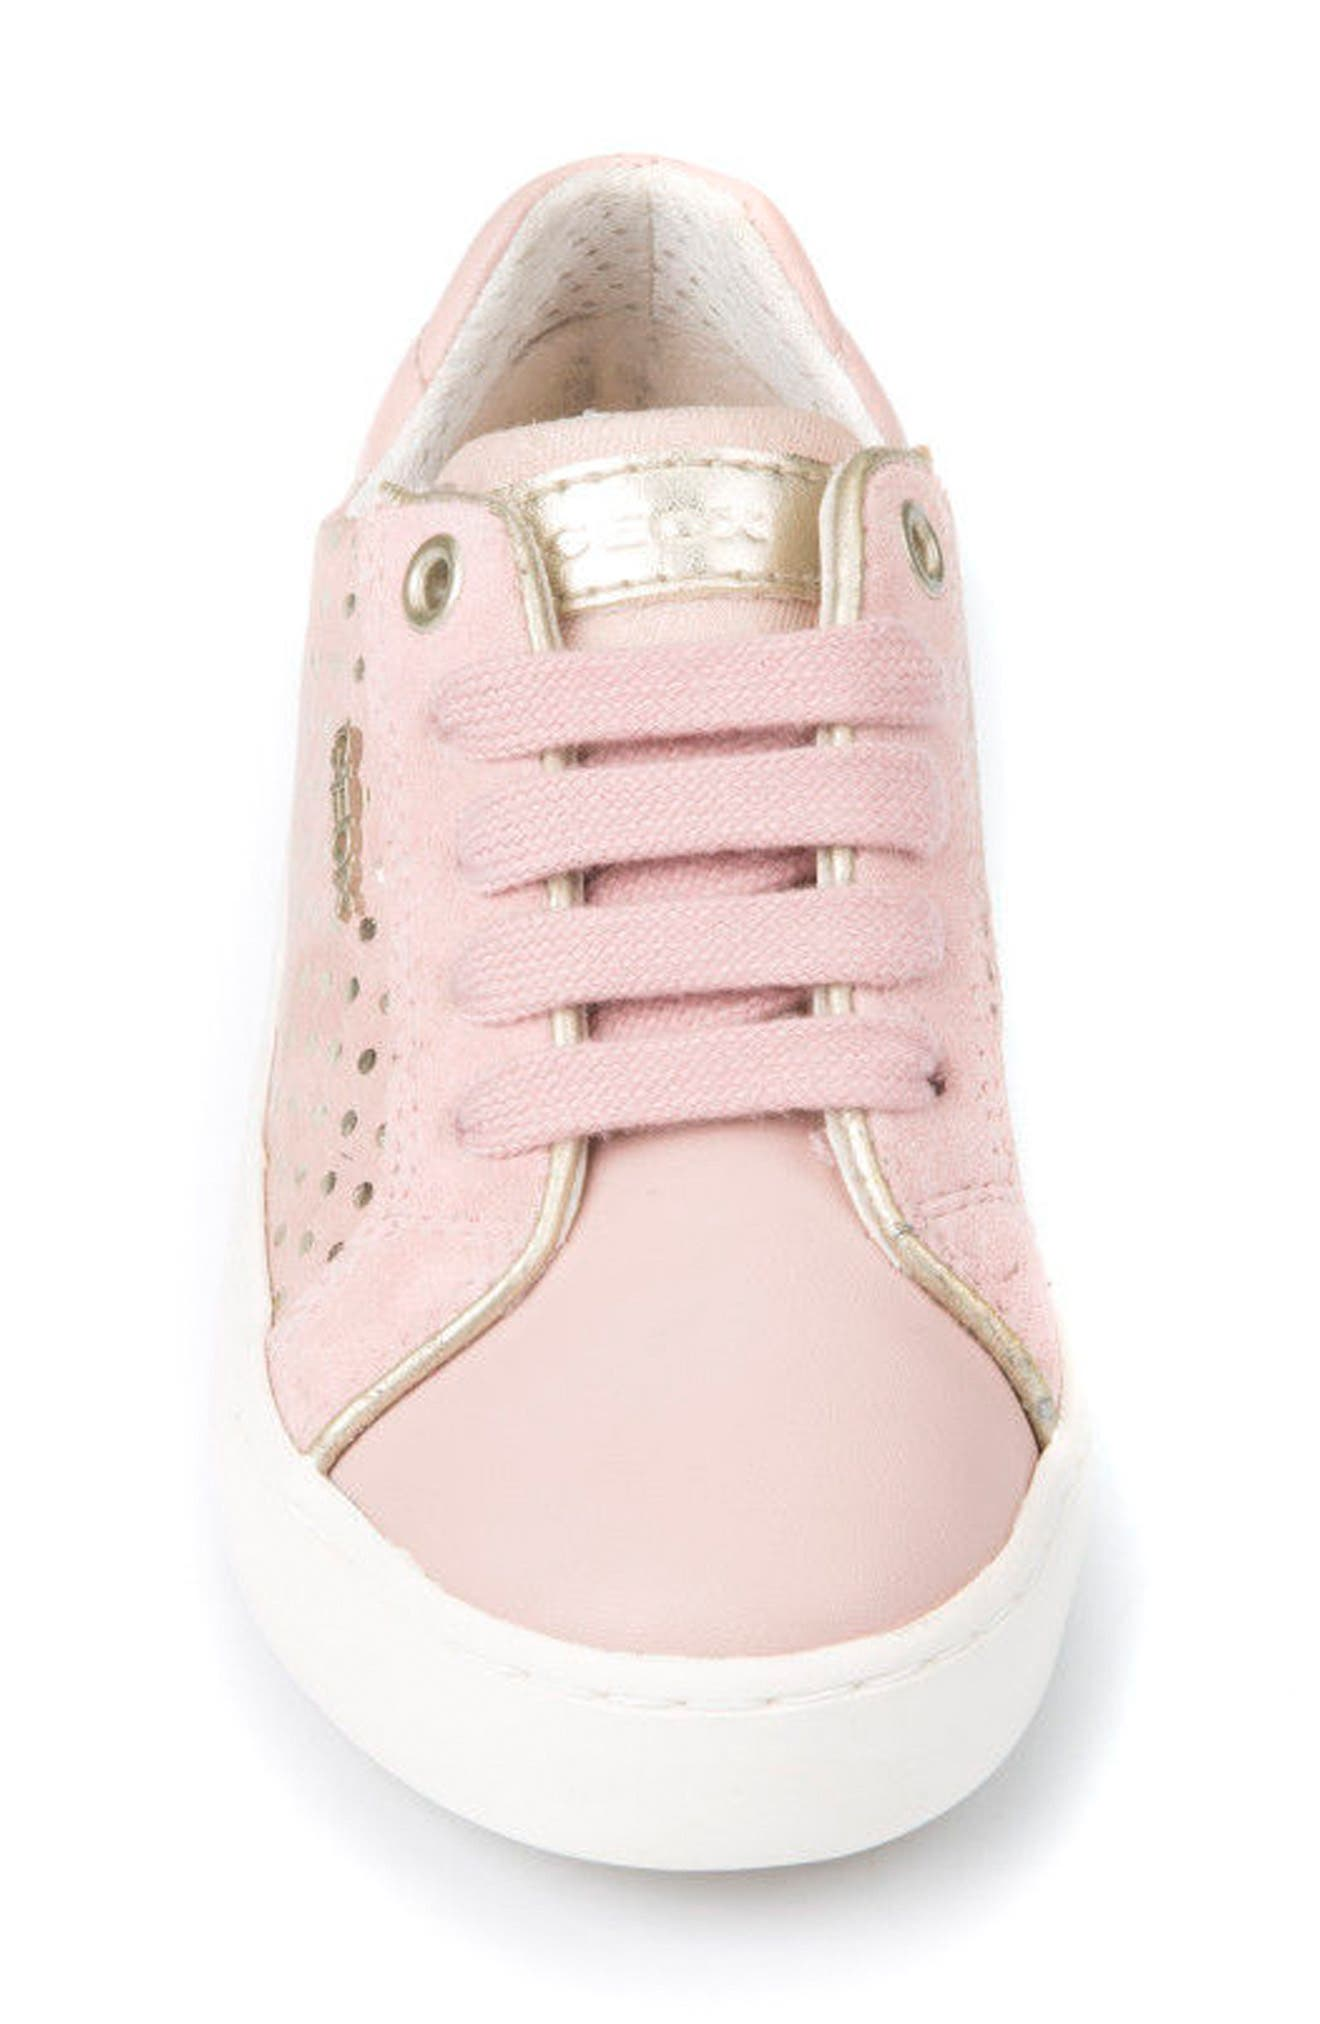 Kilwi Low Top Sneaker,                             Alternate thumbnail 4, color,                             ROSE